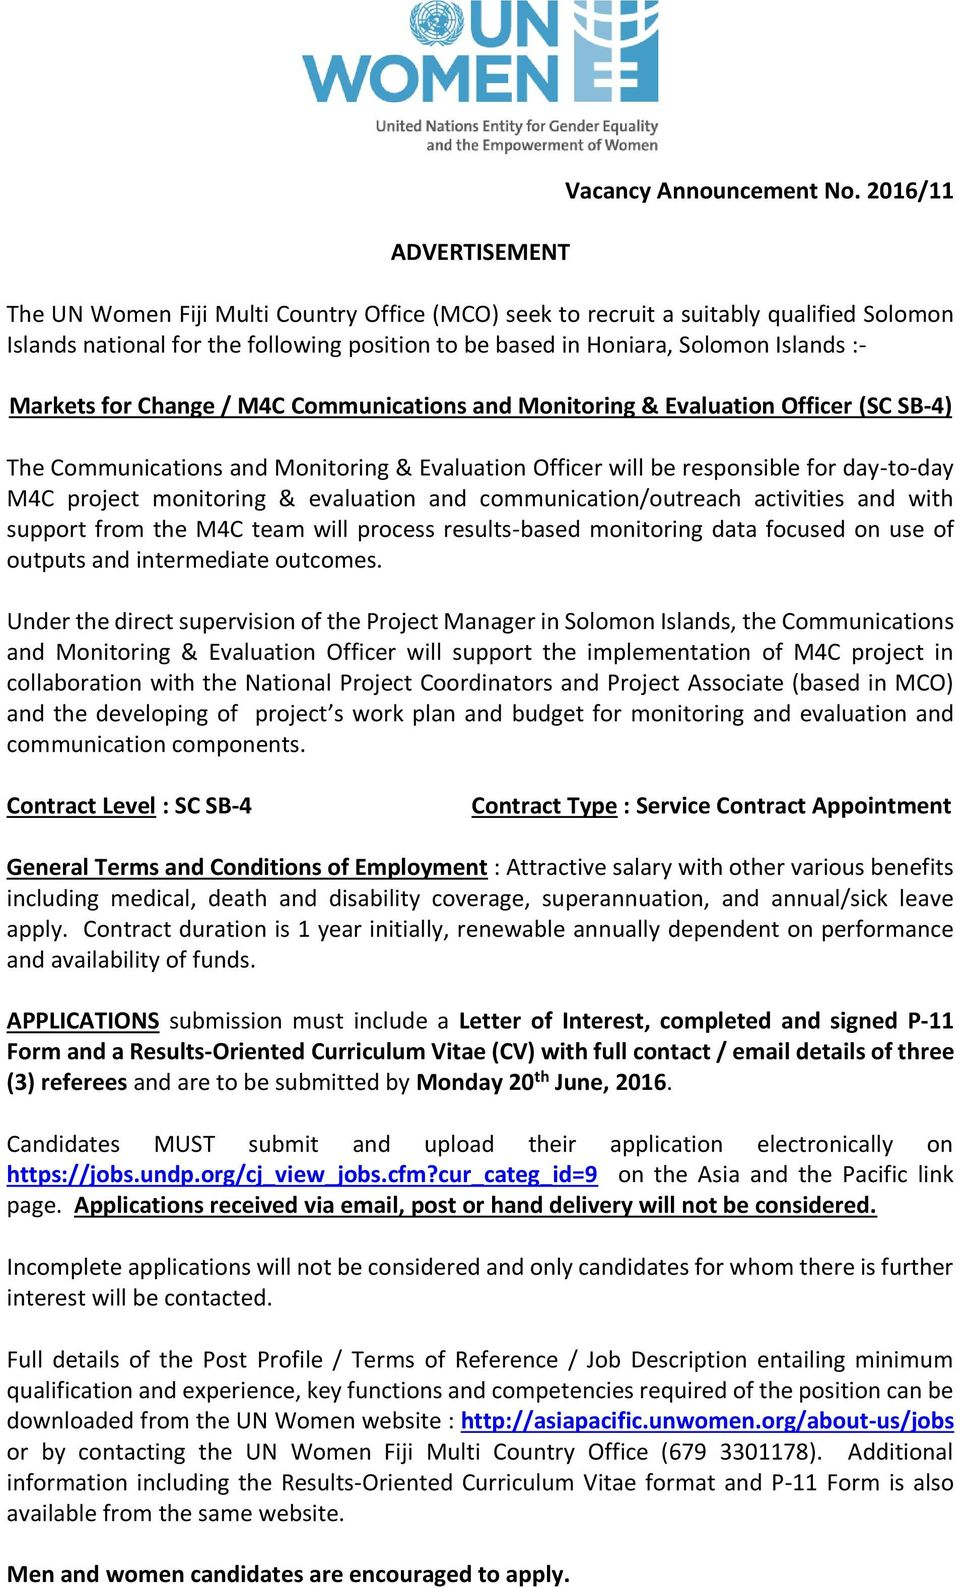 Change / M4C Communications and Monitoring & Evaluation Officer (SC SB-4) The Communications and Monitoring & Evaluation Officer will be responsible for day-to-day M4C project monitoring & evaluation